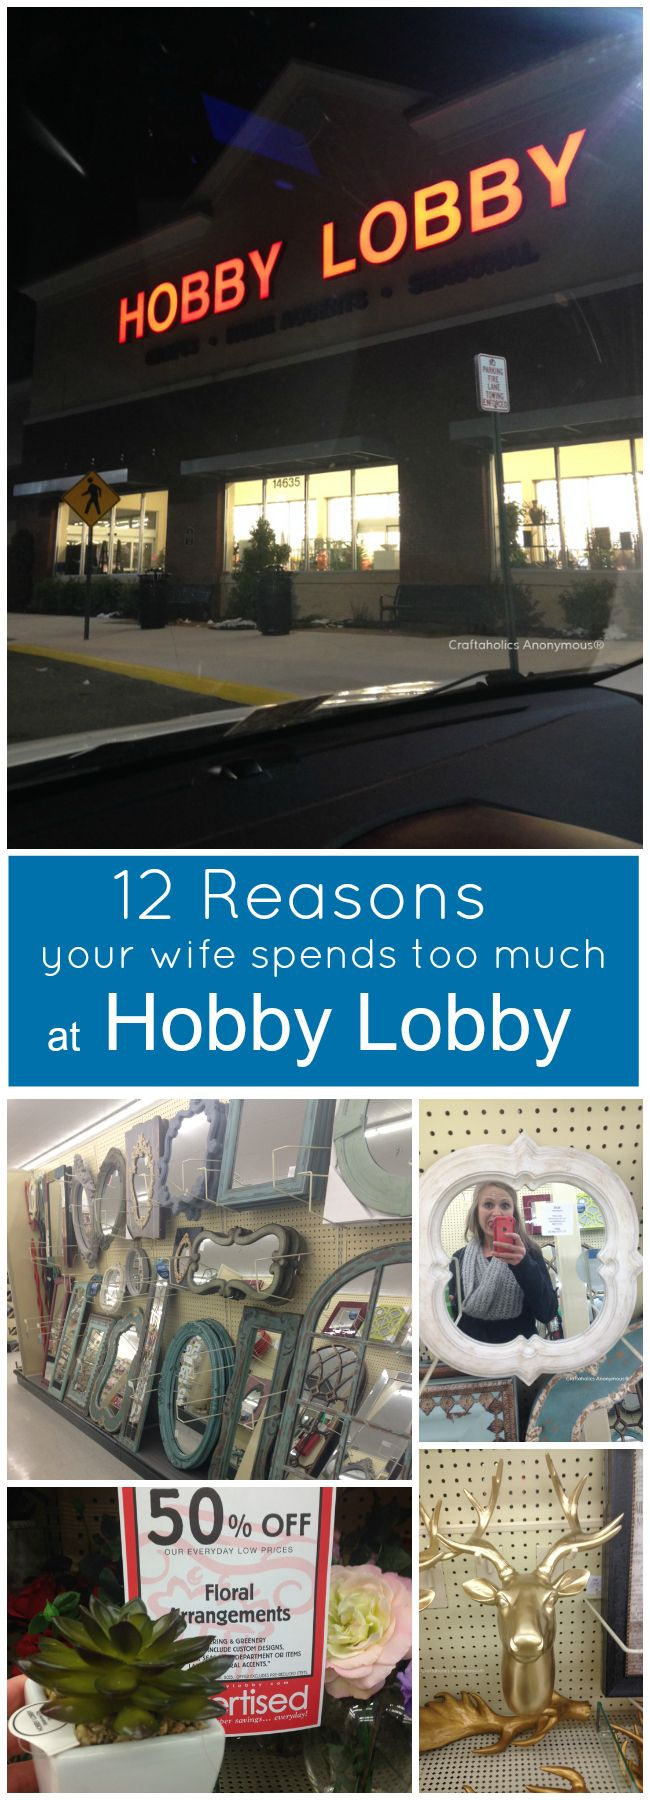 12 reasons your wife spends too much at hobby lobby || Hilarious but so TRUE!